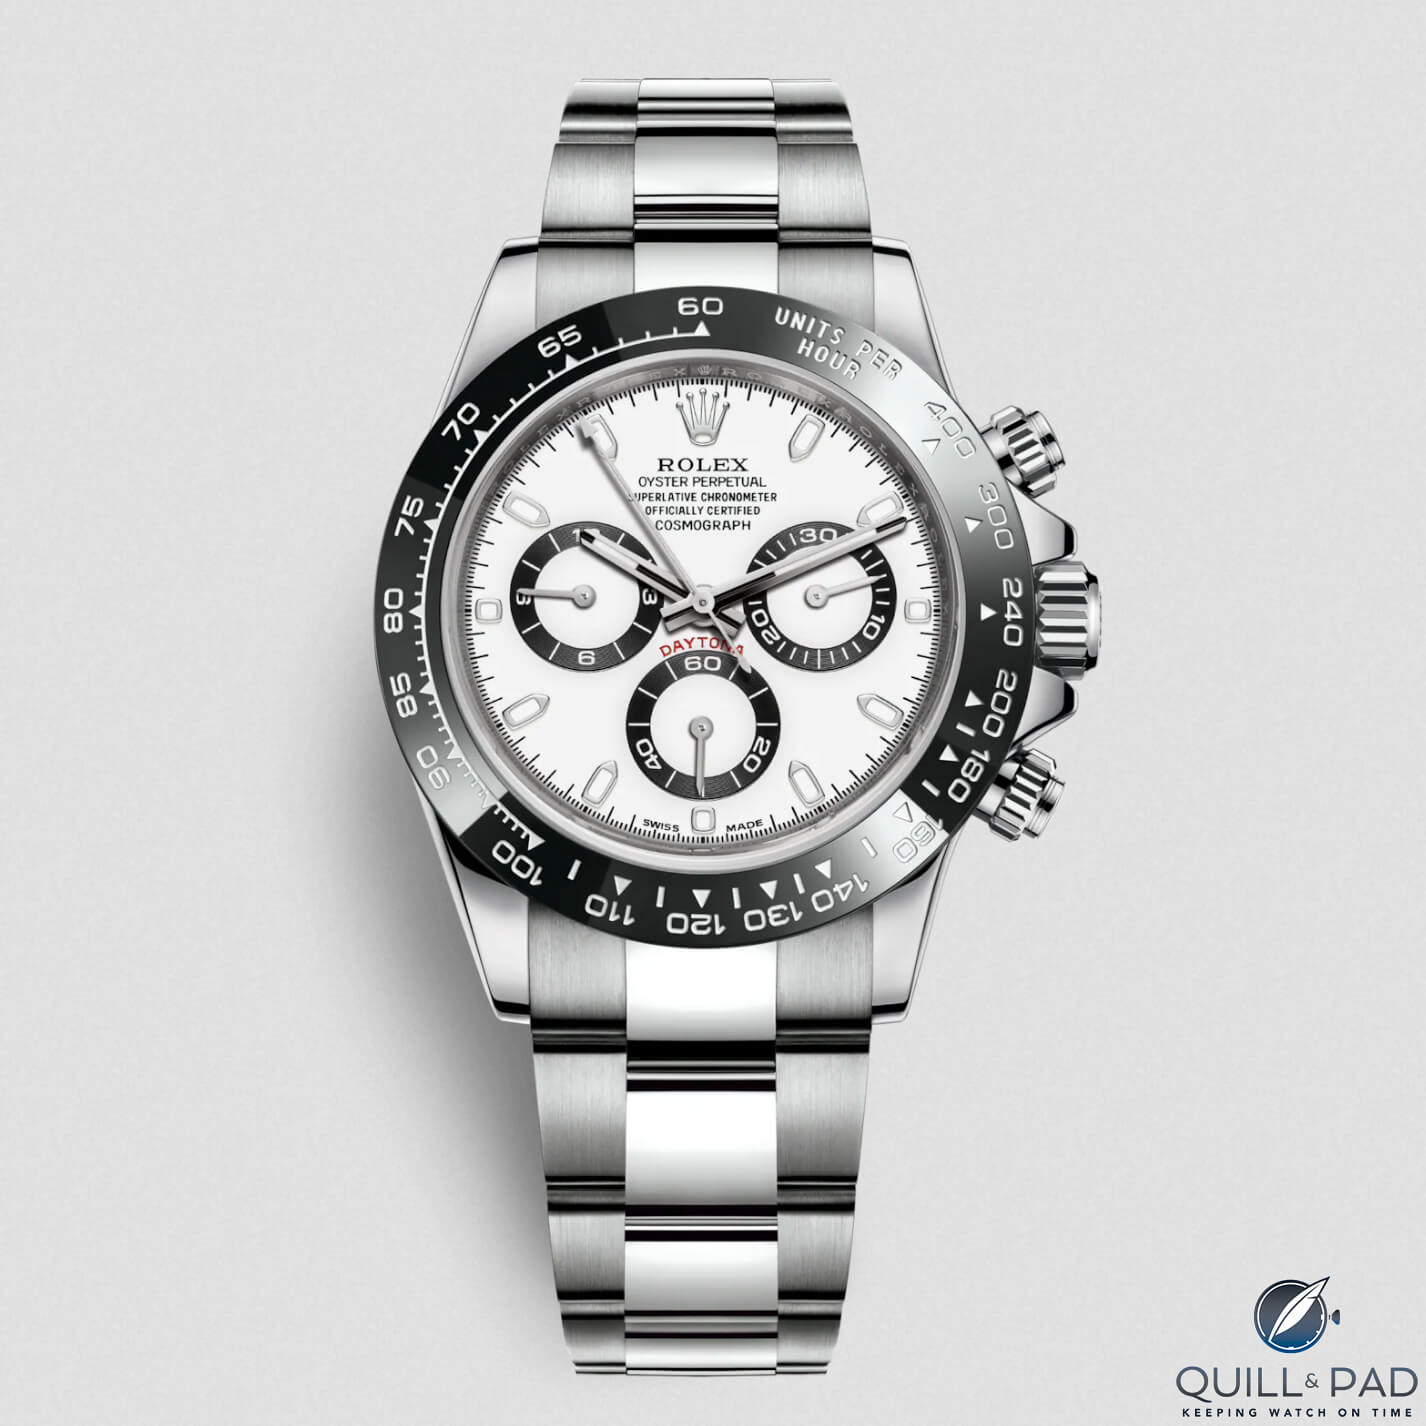 A Reader Asks Should I Buy A Steel Rolex Daytona With